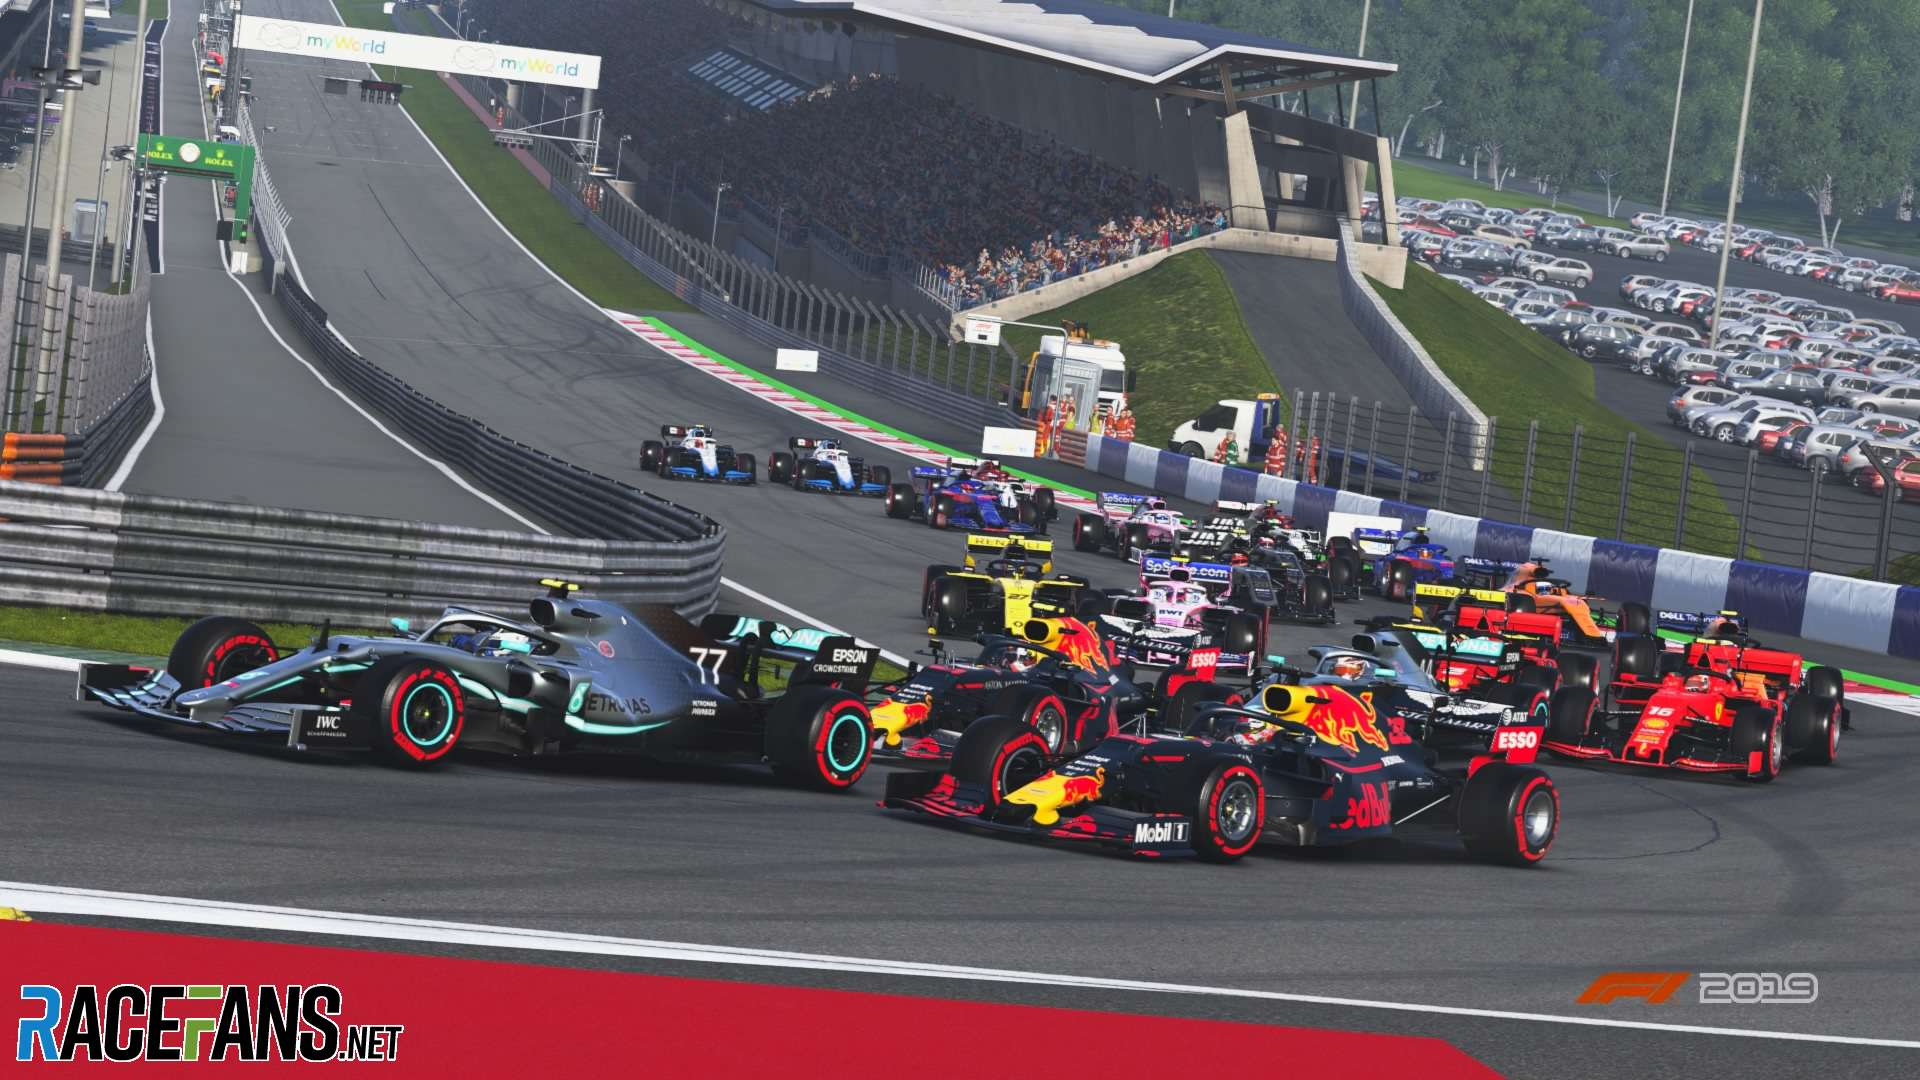 F1 2019 by Codemasters: The RaceFans review · RaceFans